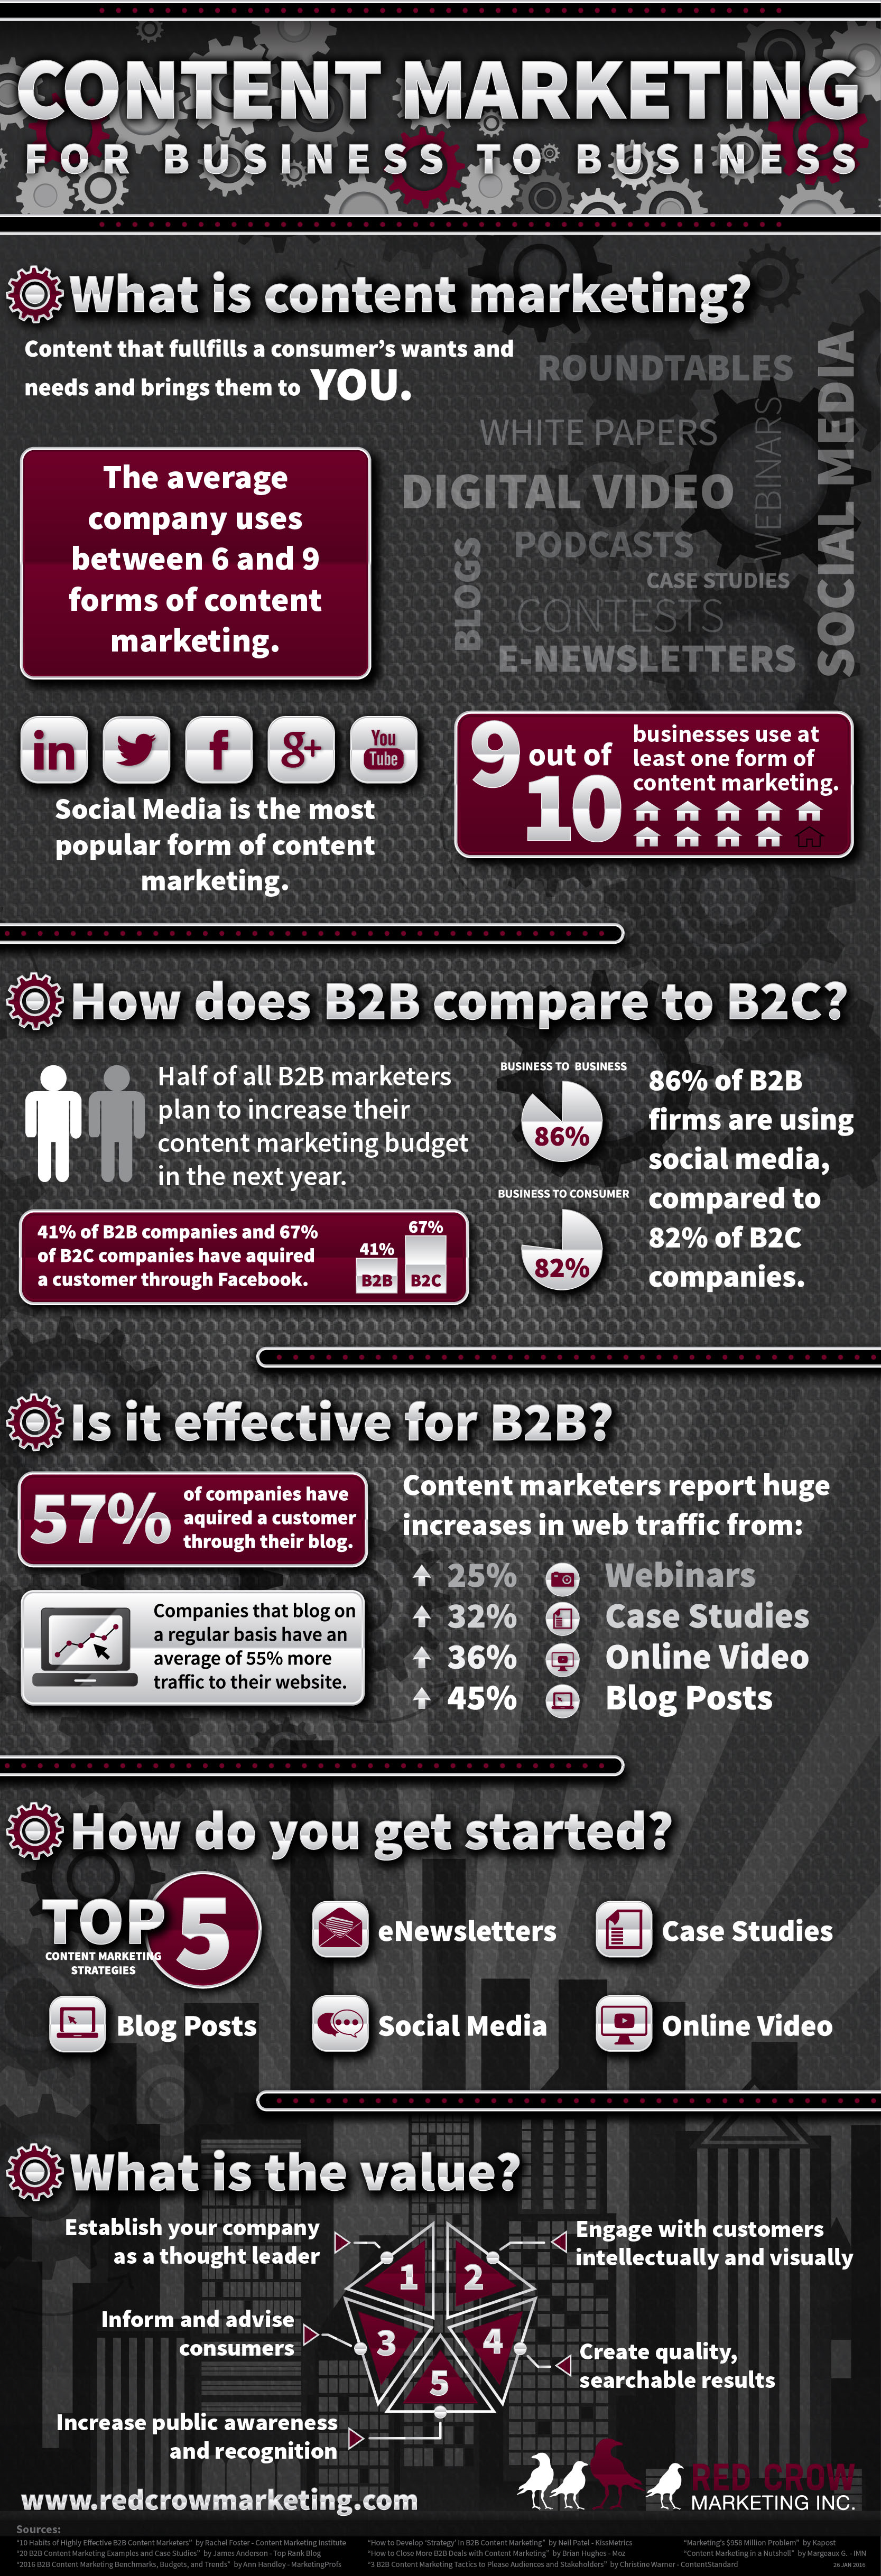 Infographic - Red Crow Marketing B2B Content Marketing